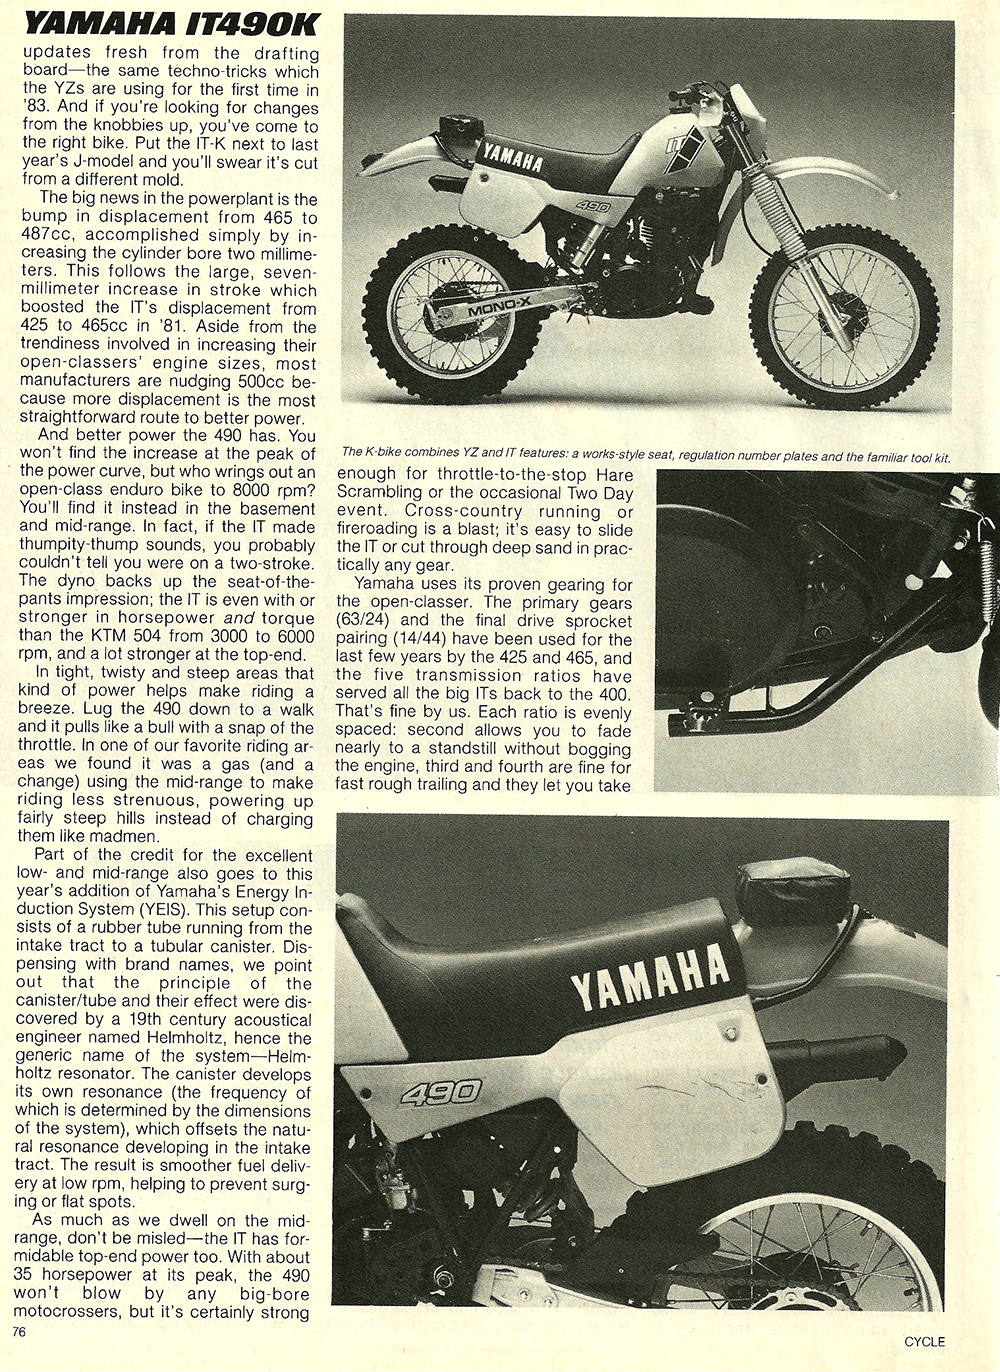 1983 Yamaha IT490K road test 2.jpg